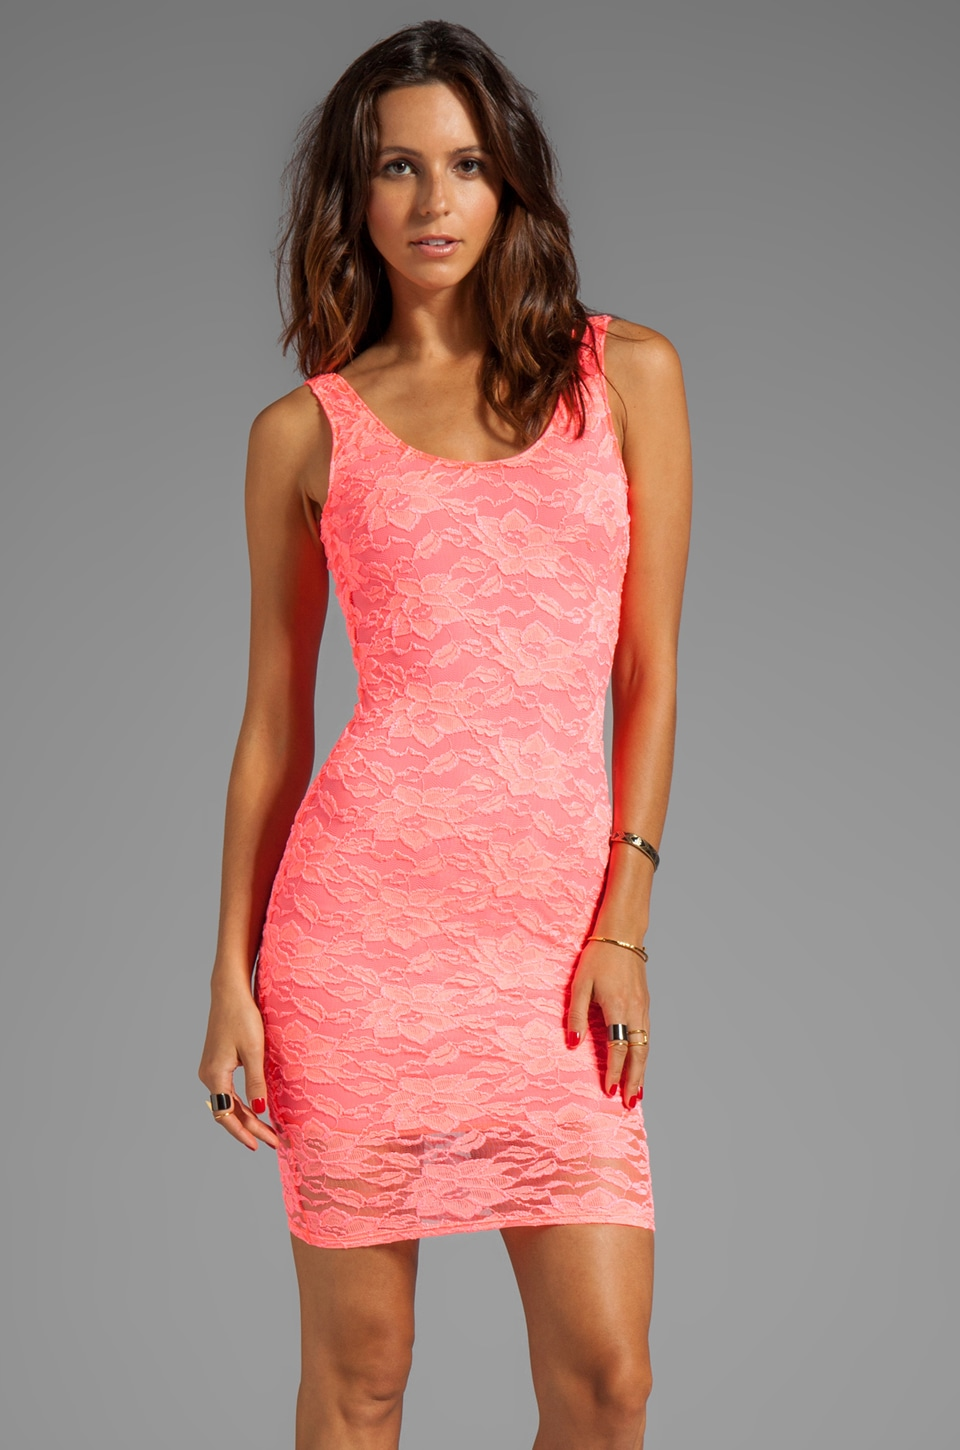 Donna Mizani Passion Scoop Back Dress in Hot Coral